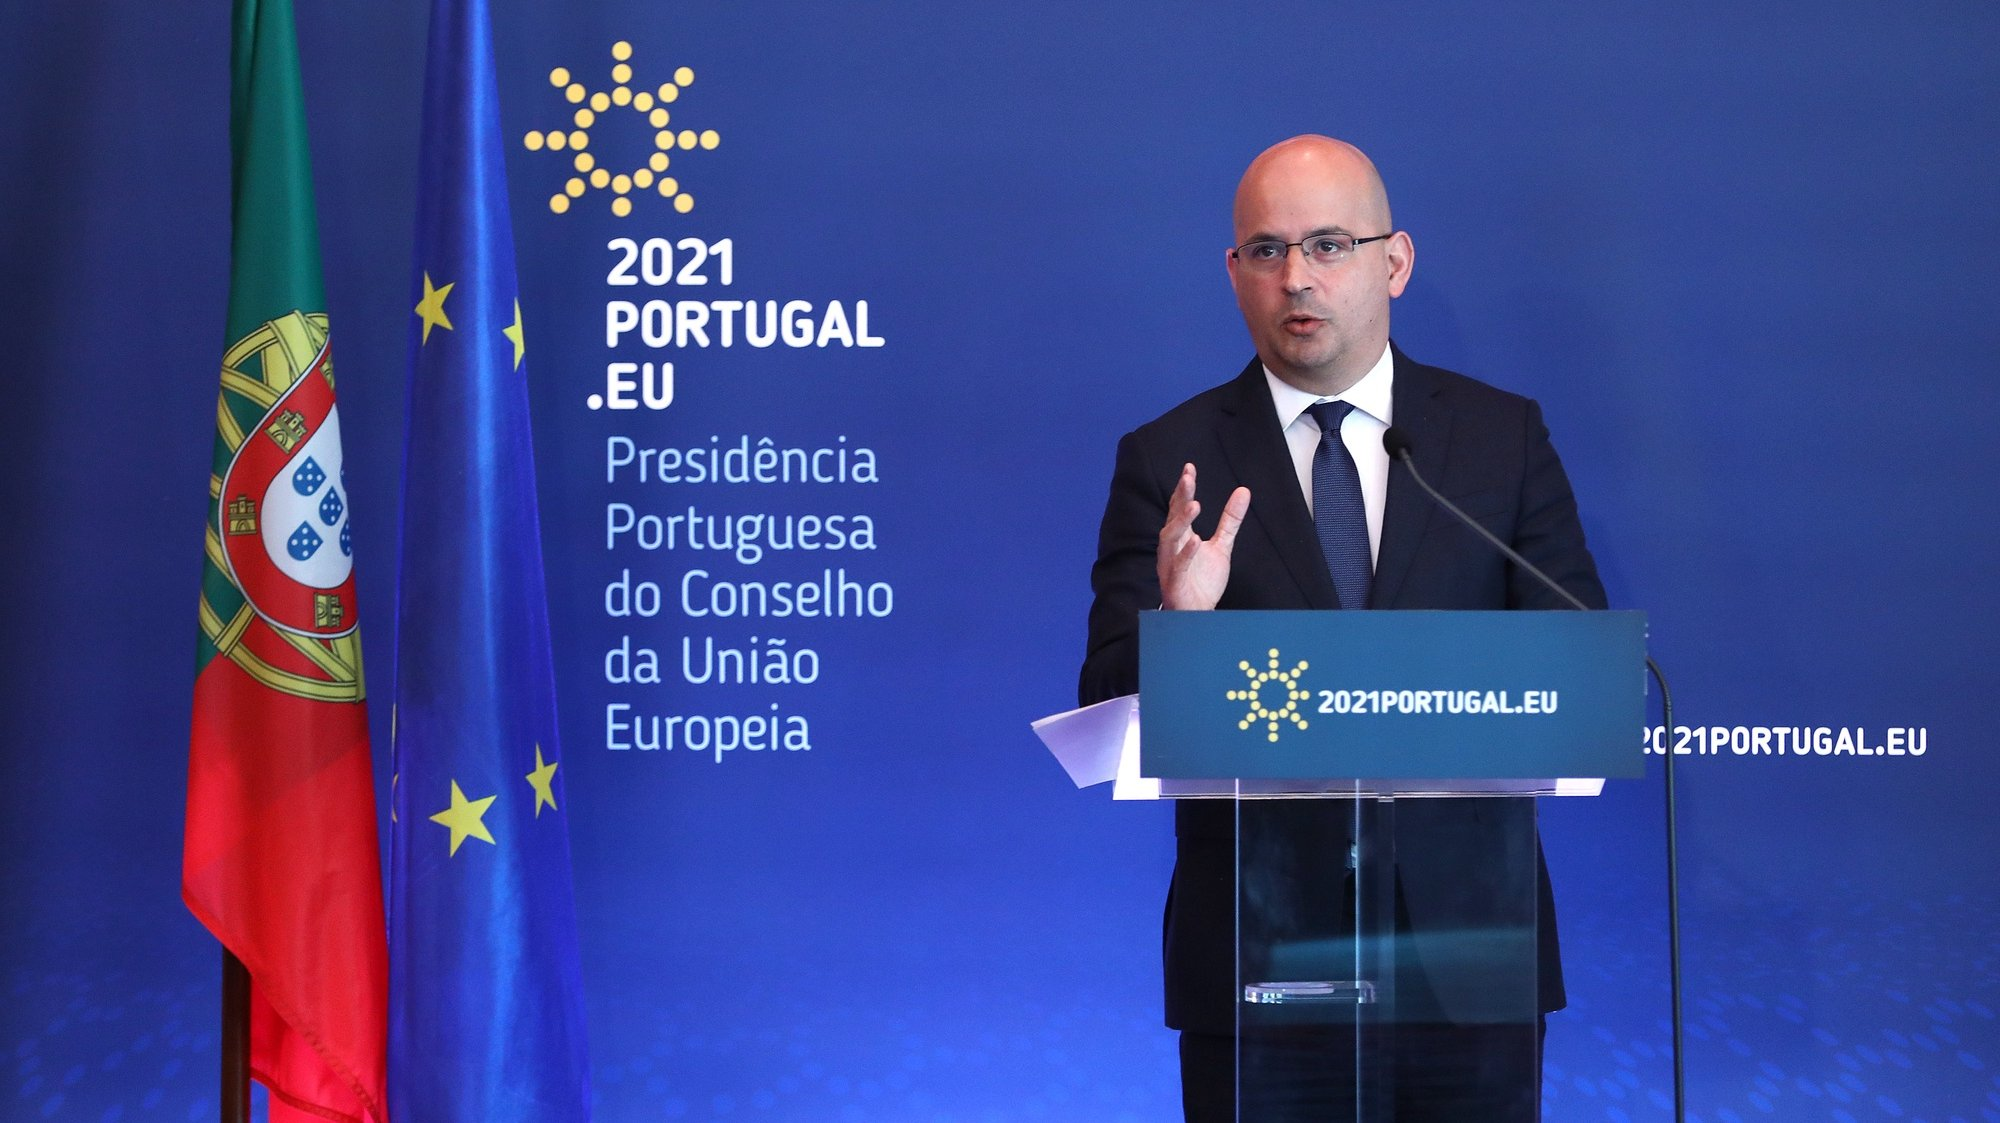 epa09078237 Portuguese Minister of State for Finance, Joao Leao, attends a press conference after an informal video conference of Economic and Finance ministers under the Portuguese Presidency of the Council, in Lisbon, Portugal, 16 March 2021. Ministers had an exchange of views on the state of play and way forward on tax challenges arising from digitalisation and also tooked stock of the economic situation and outlook in Europe in view of the COVID-19 crisis.  EPA/ANTONIO PEDRO SANTOS